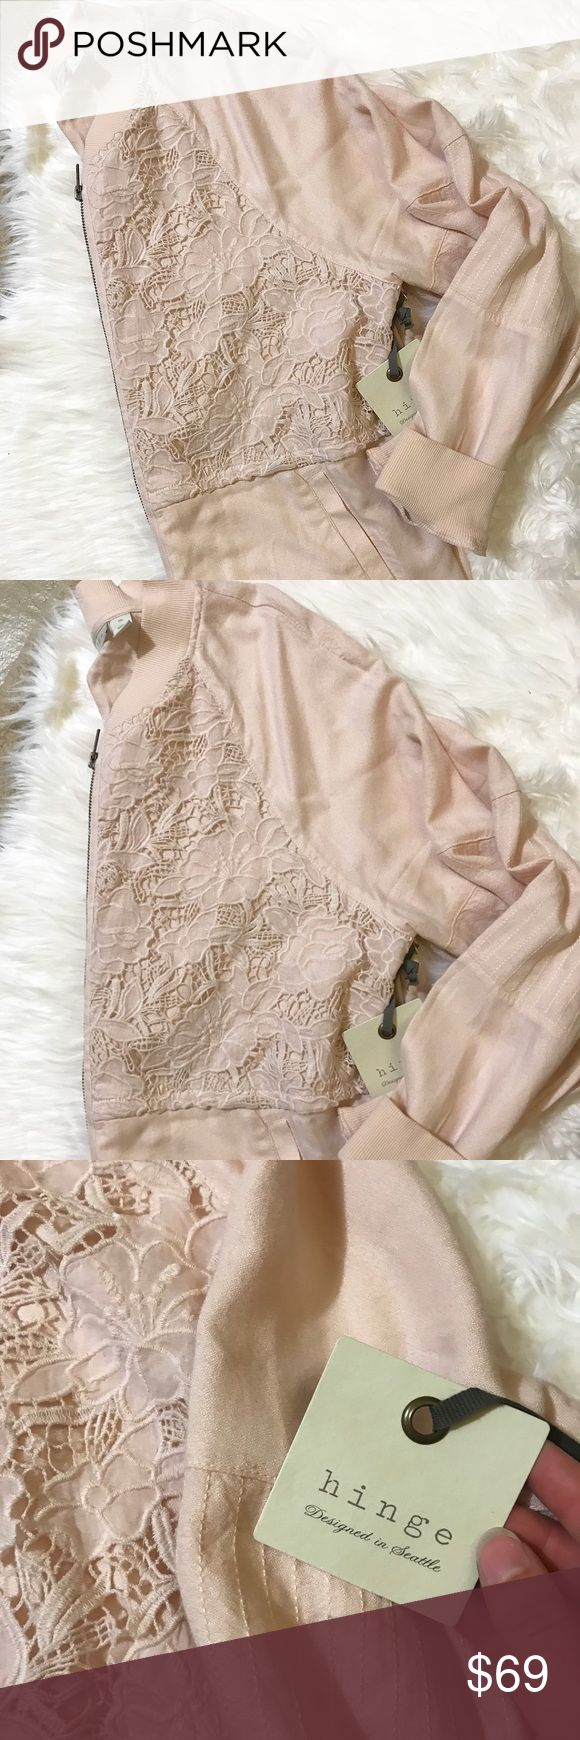 NWT Hinge blush bomber jacket with eyelet detail Pretty light blush colored jacket with an eyelet/crochet detail. Zips up the front. Two pockets. Has a small black spot on the front as shown in up close photo. Hinge Jackets & Coats